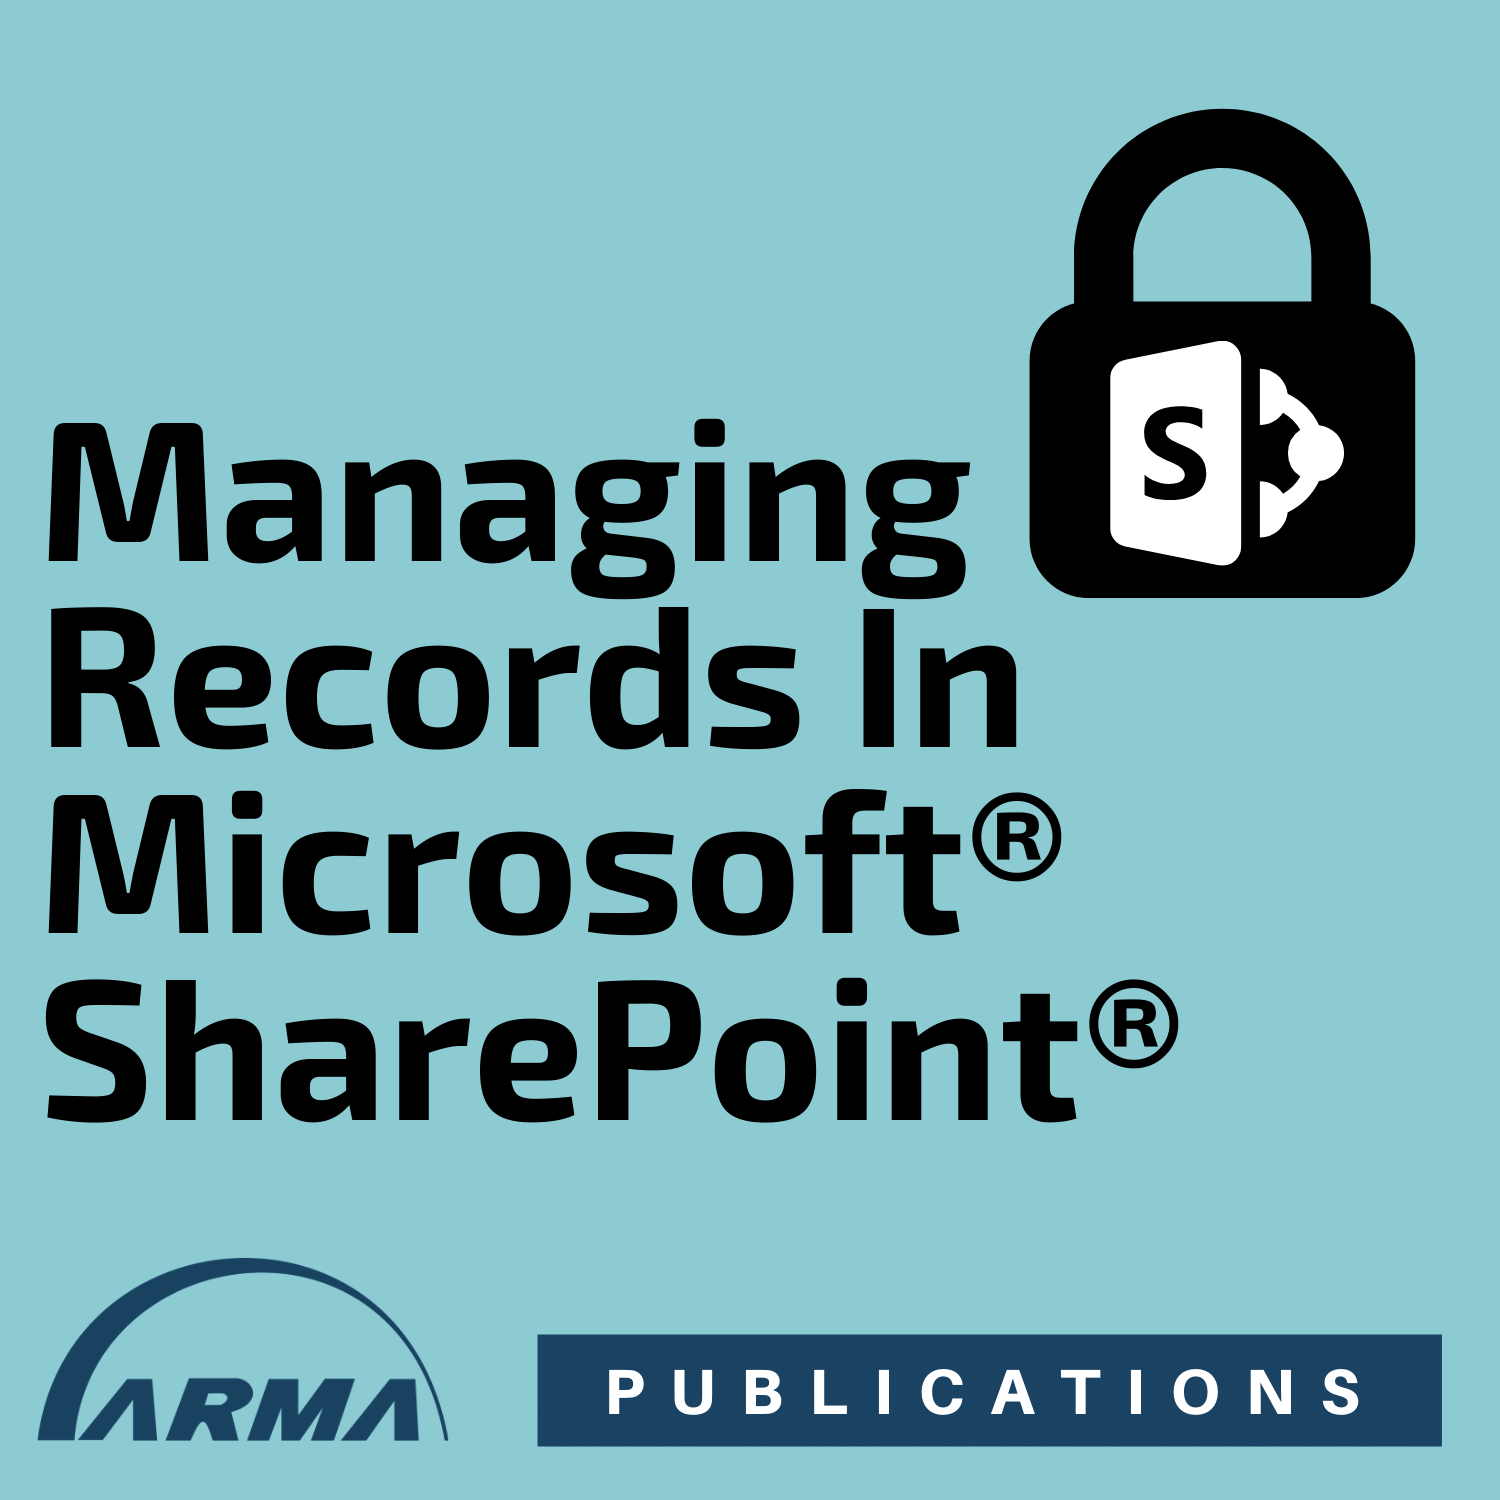 Managing Records in Microsoft SharePoint